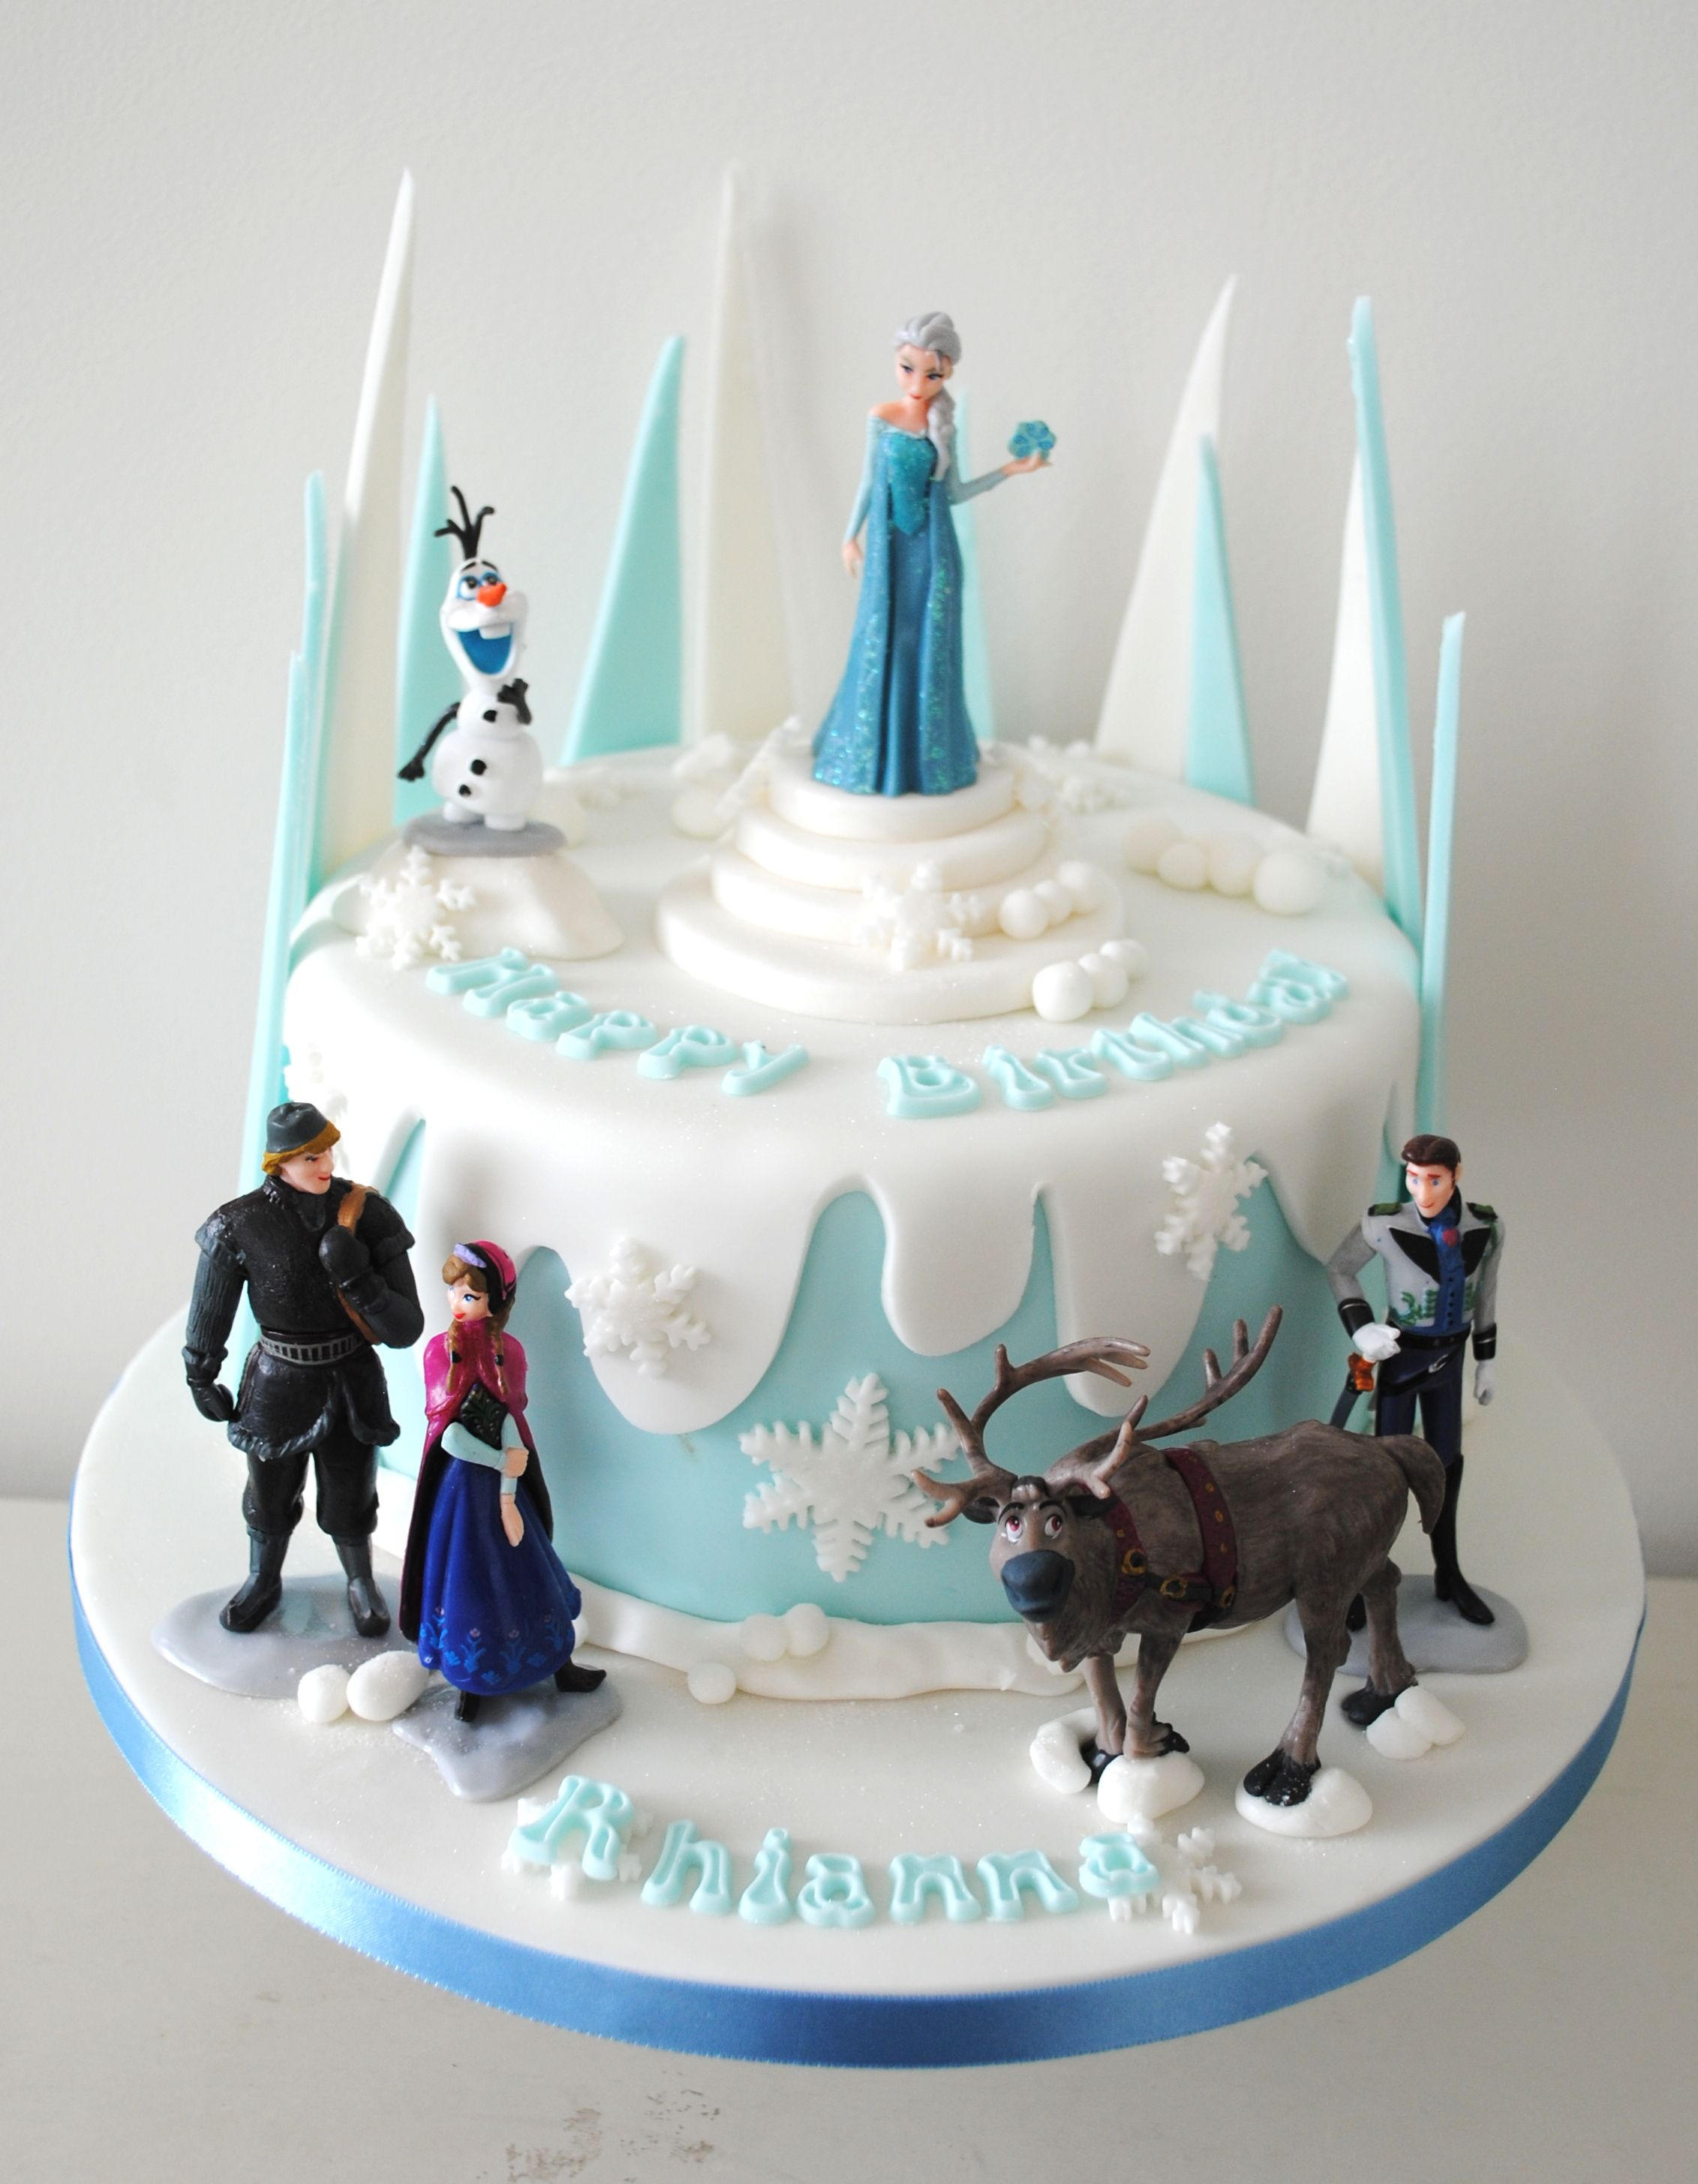 23+ Excellent Image of Frozen Themed Birthday Cakes